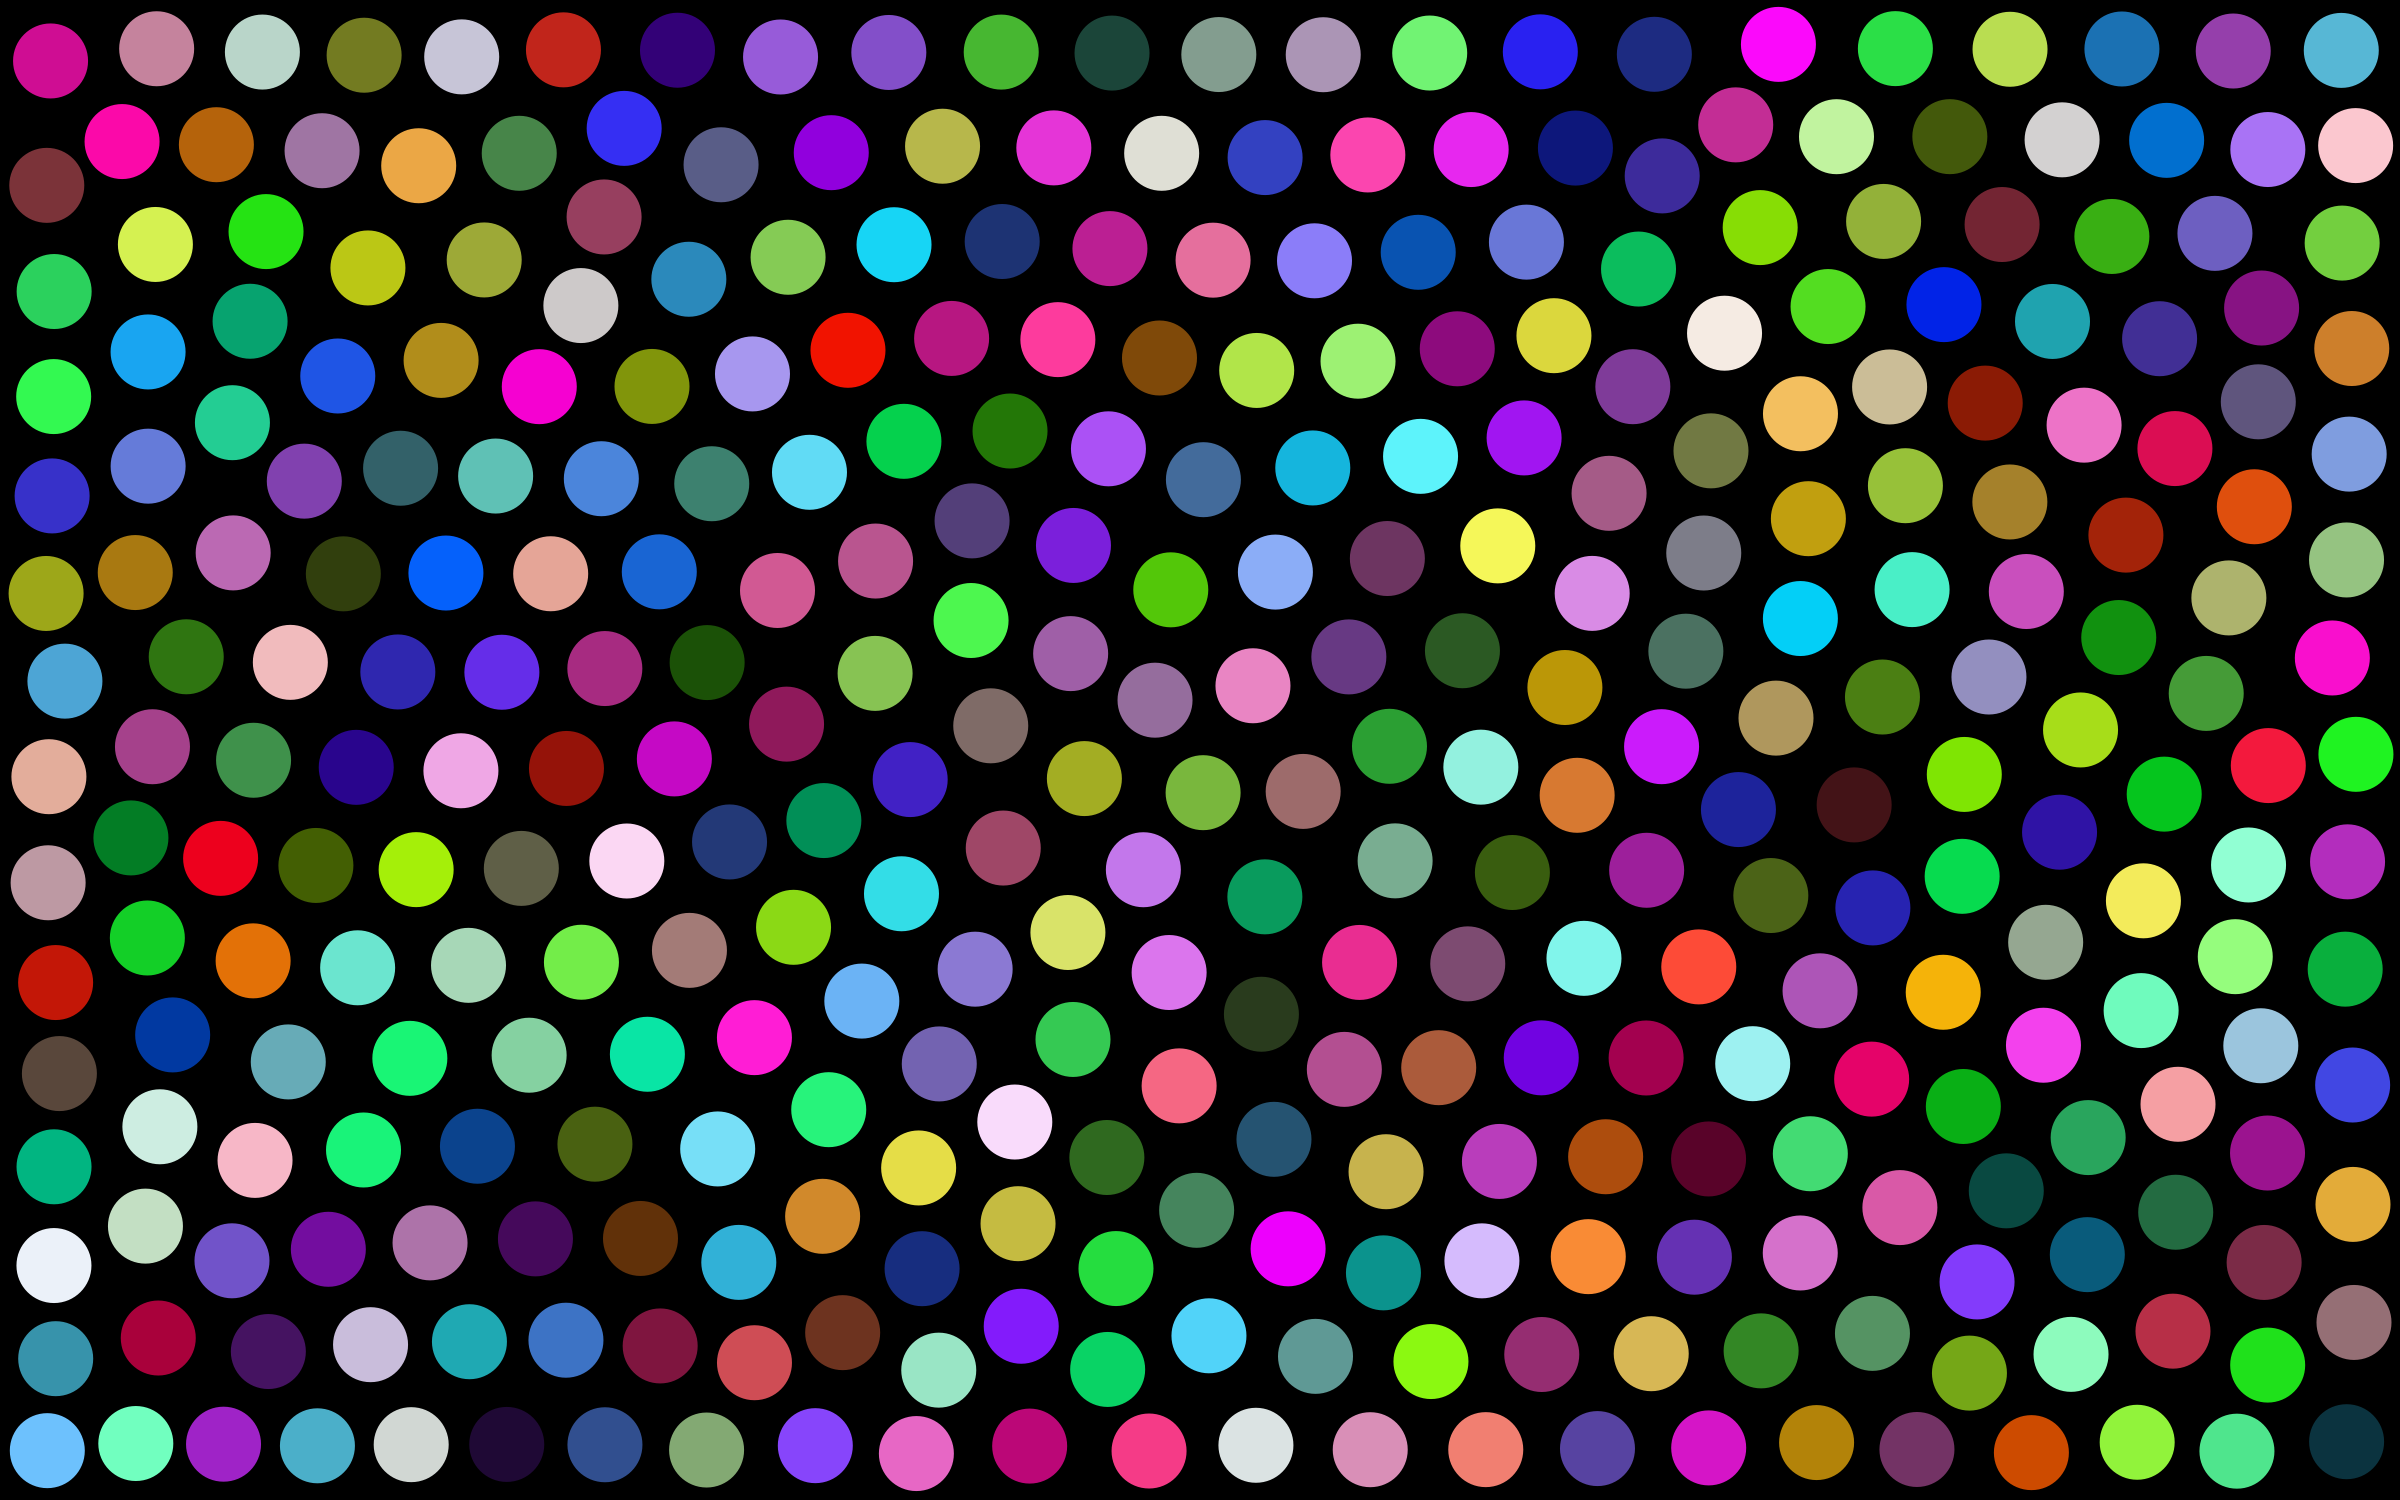 Prismatic Dots Background by GDJ